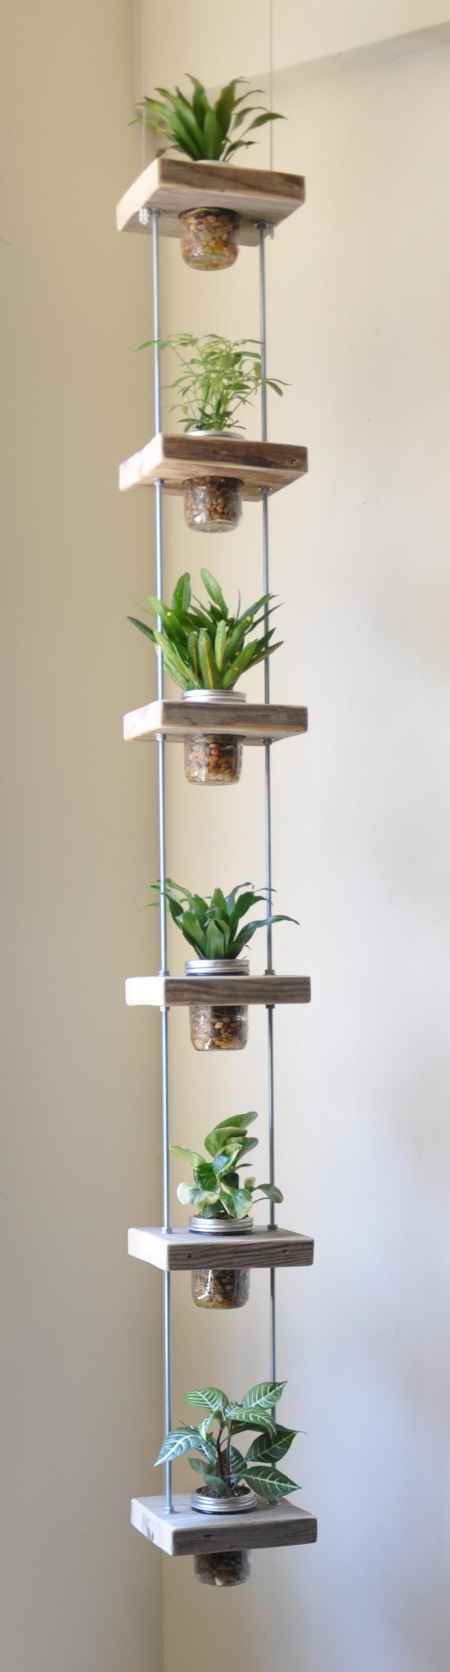 14-vertical-garden-ideas-for-your-home